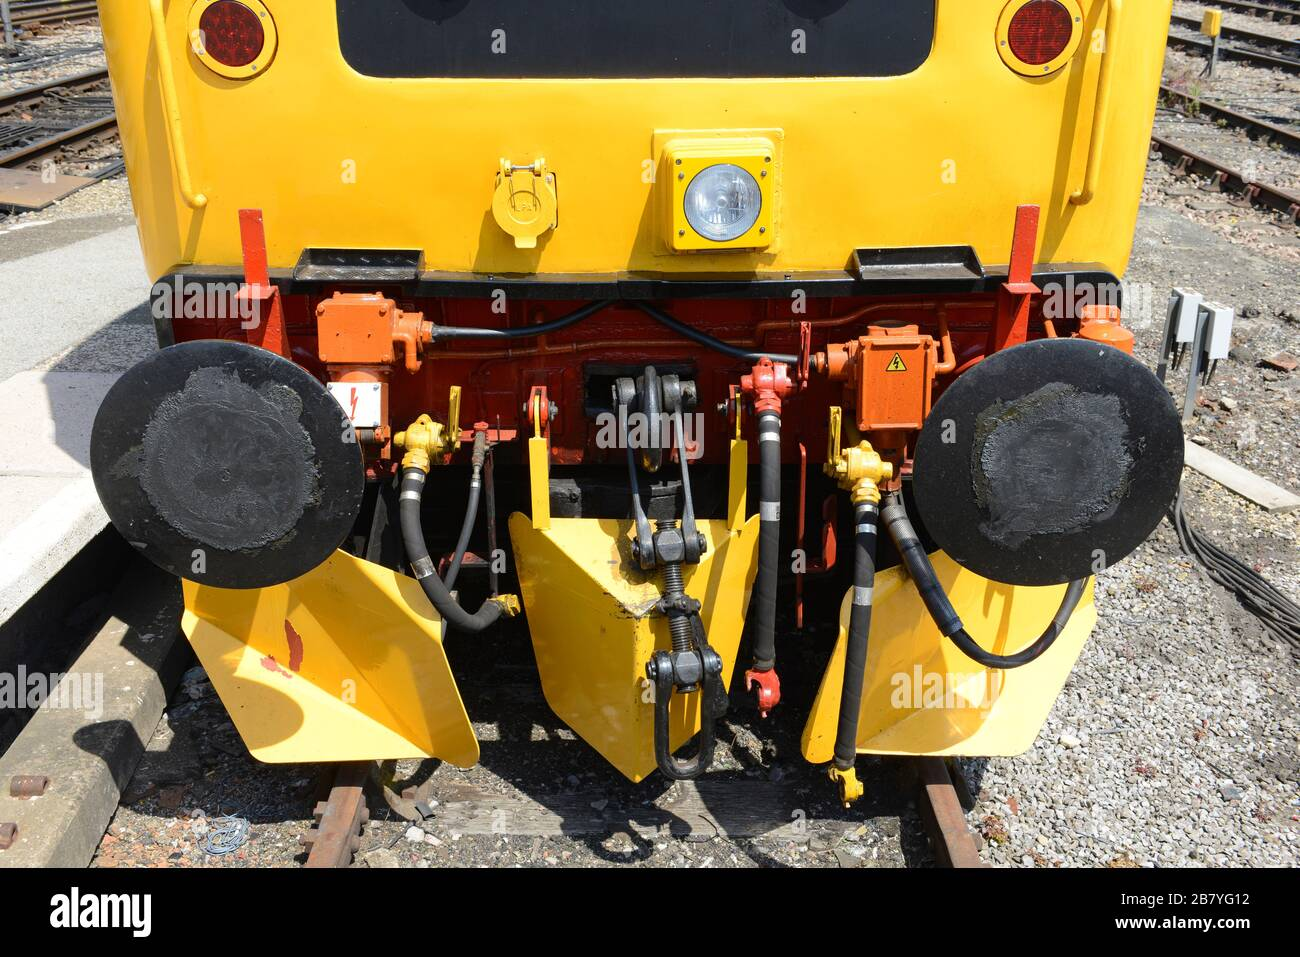 Close up of the buffer beam of a class 47 diesel locomotive in old livery from the 1980's parked at Temple Meads railway train station in Bristol, UK. Stock Photo